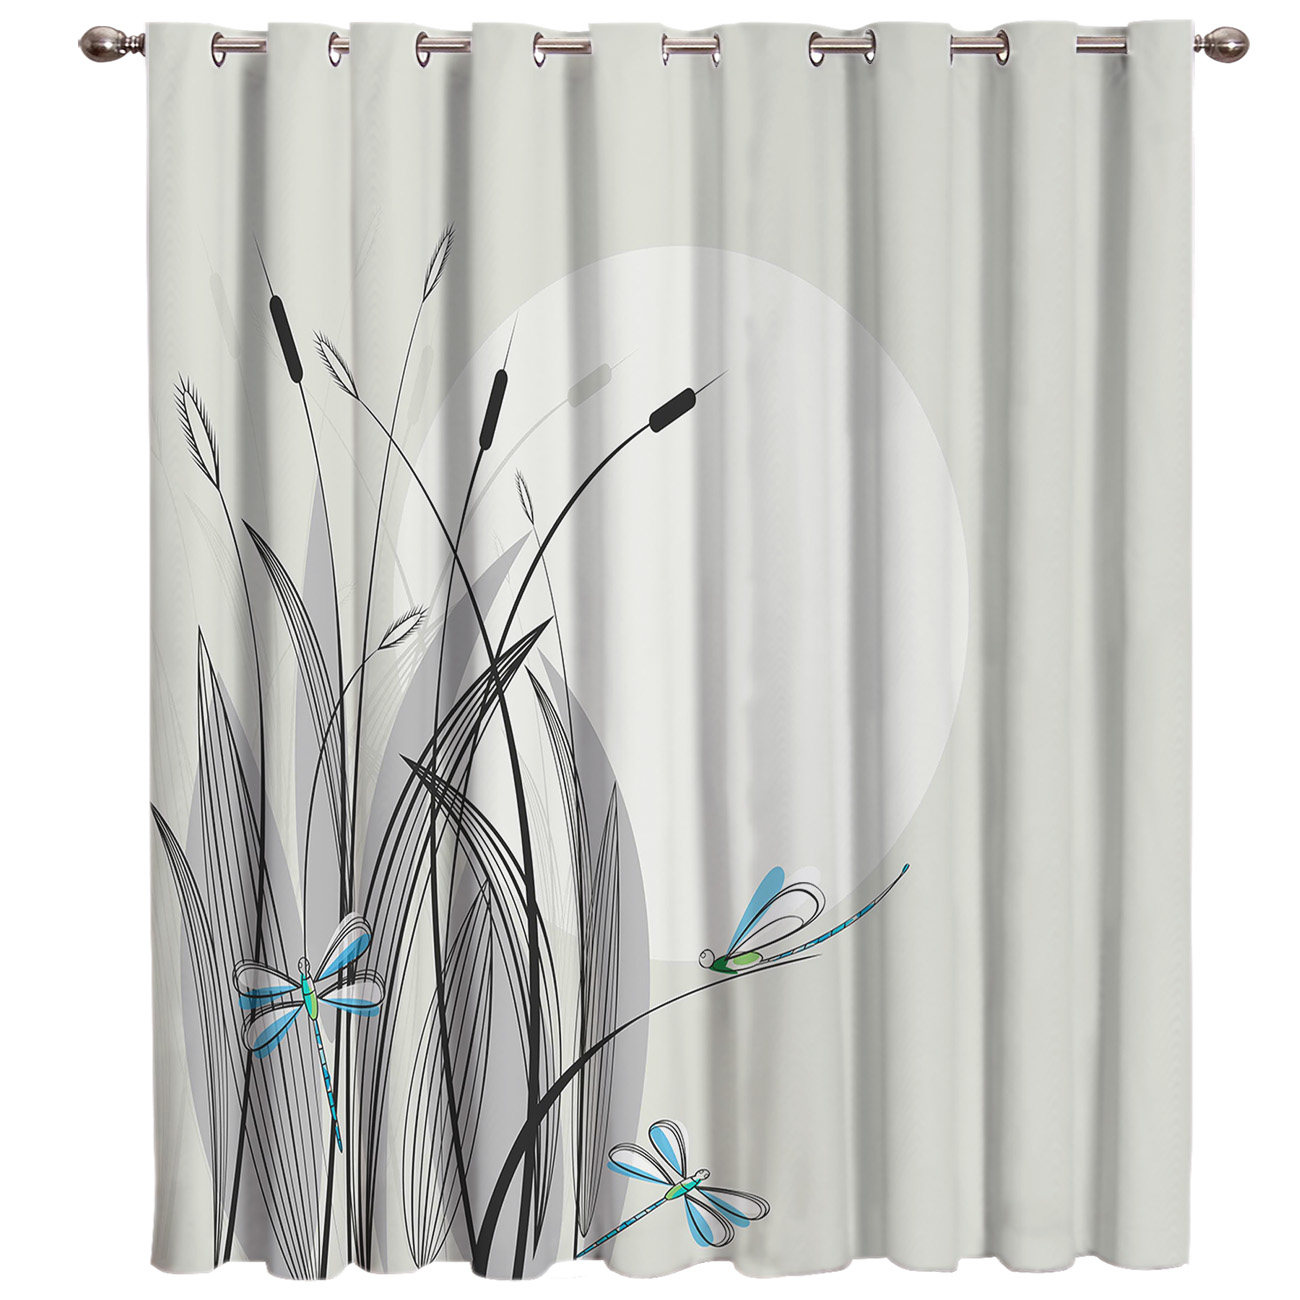 Dragonfly Room Curtains Large Window Window Curtains Dark Curtain Rod Blackout Bedroom Kitchen Outdoor Fabric Print Decor Window